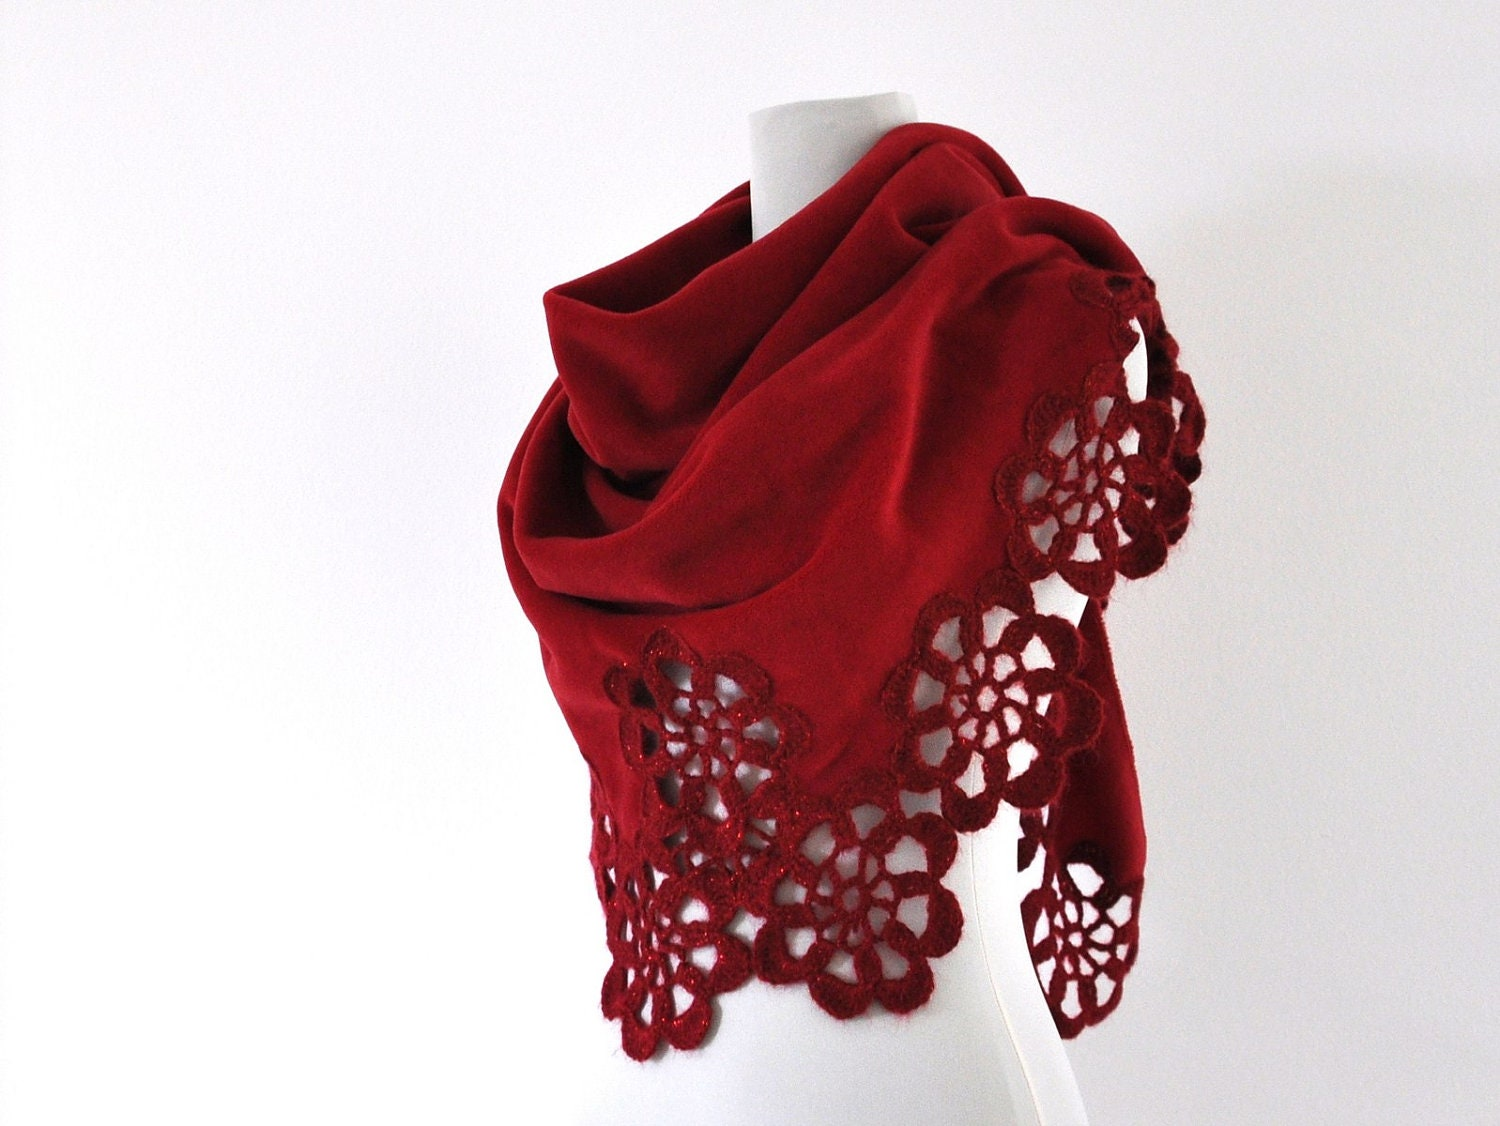 Red Fleece Shawl Wedding Shawl Bridal Wrap Stole Crochet Flower Motifs Triangle Bridal Accessories Valentines Day Love Gift for Her - reflectionsbyds